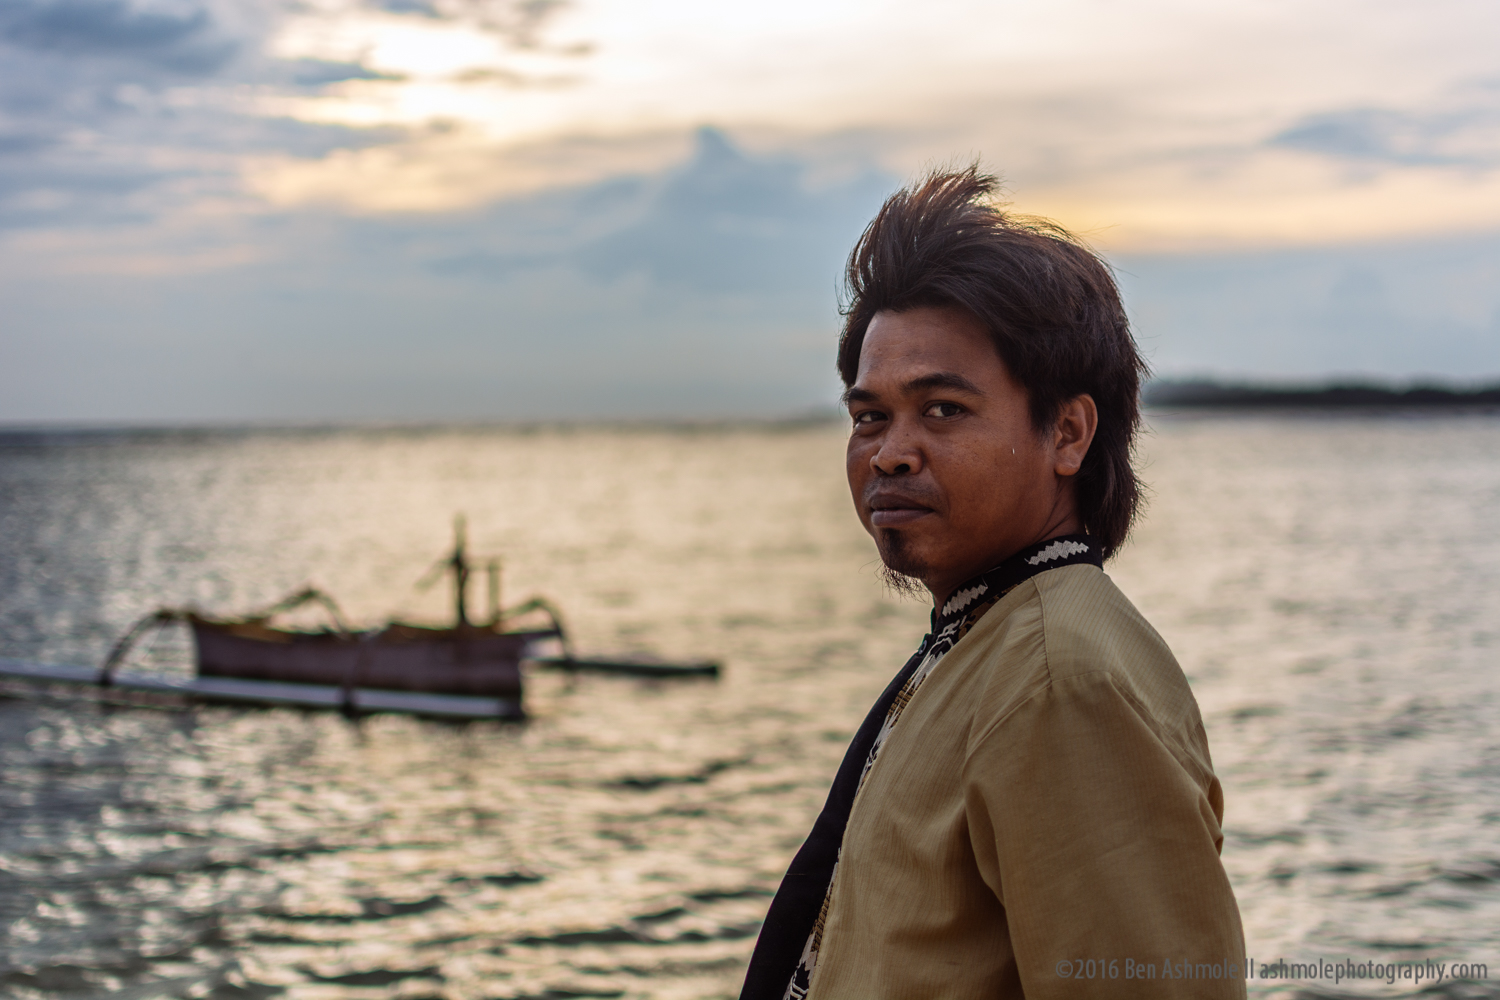 Man And His Boat, Gili Air, Indonesia